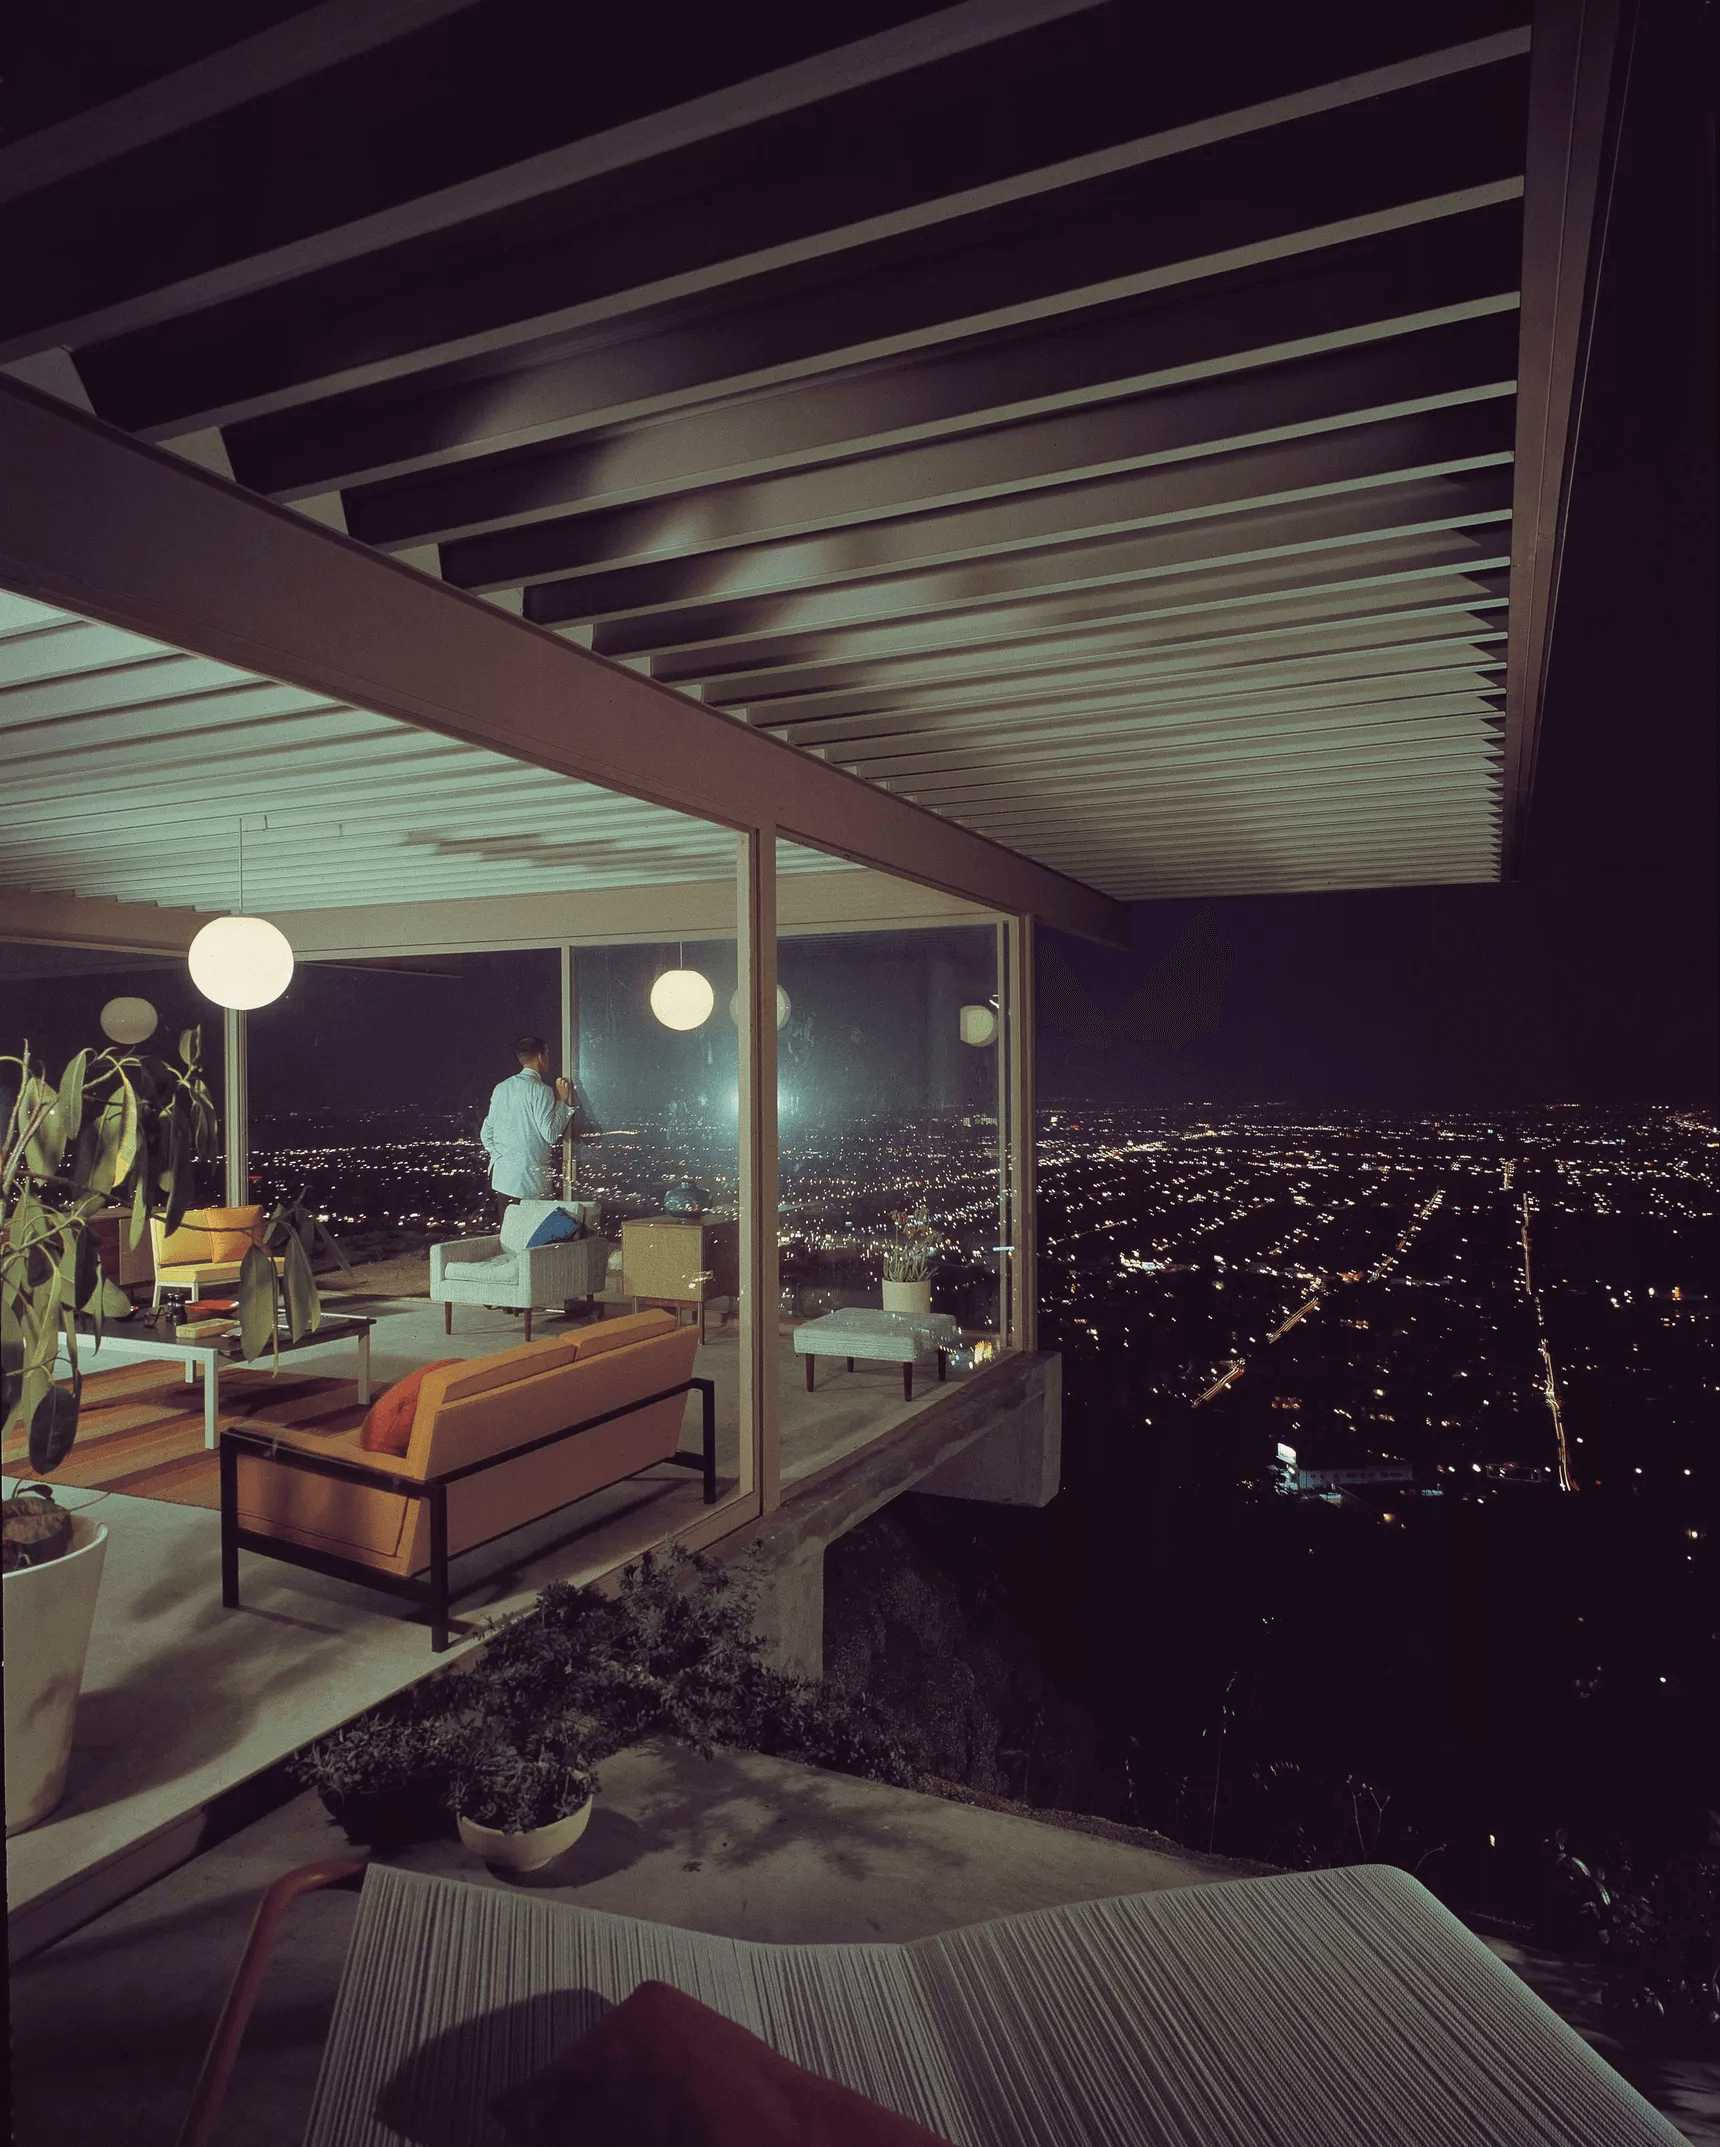 this-is-the-Stahl-House-in-West-Hollywood-showing-a-night-view-of-LA-with-a-look-into-the-living-room-with-floor-to-ceiling-windows-on-show-as-well-as-the-furniture